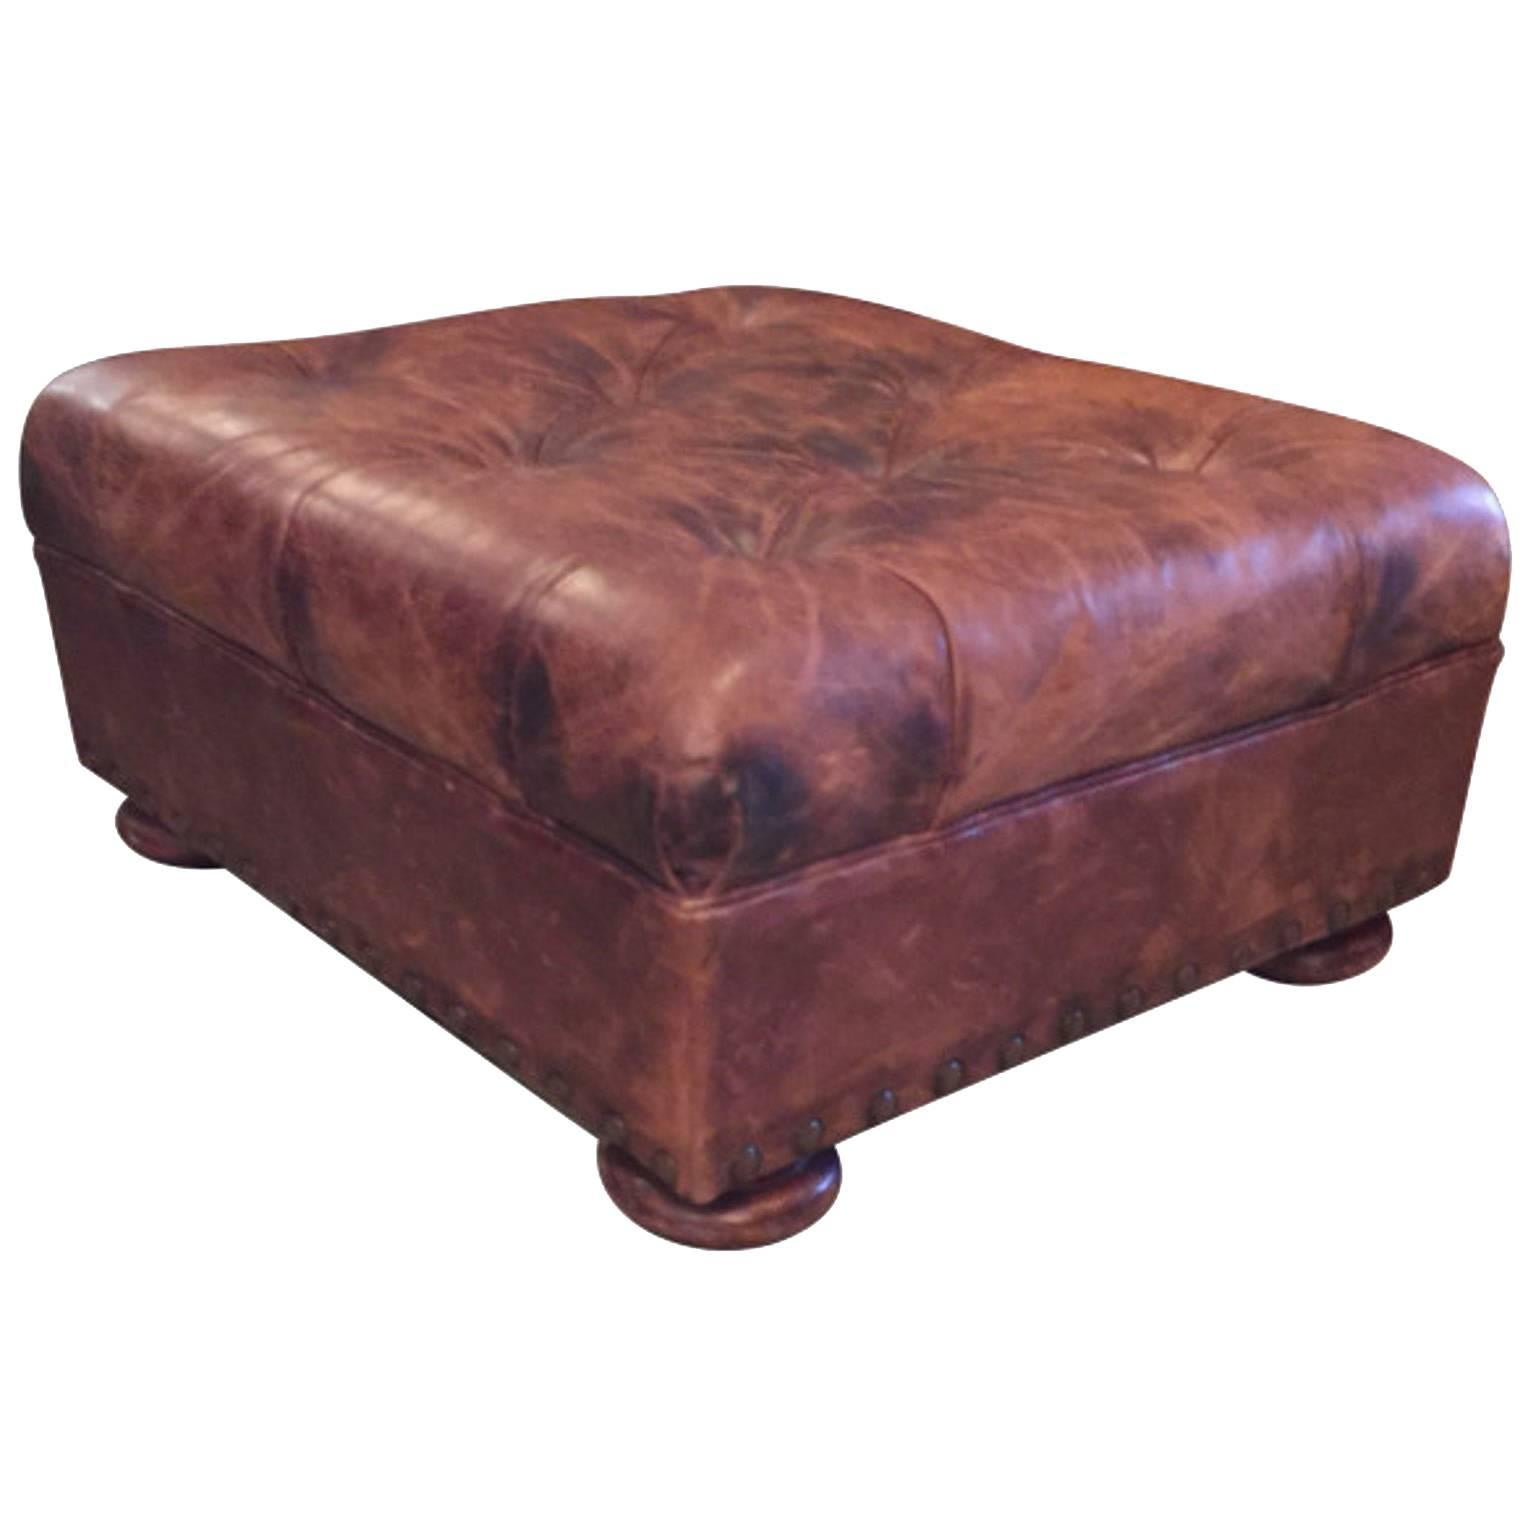 Awesome Ralph Lauren Tufted And Distressed Brown Leather Ottoman At Caraccident5 Cool Chair Designs And Ideas Caraccident5Info